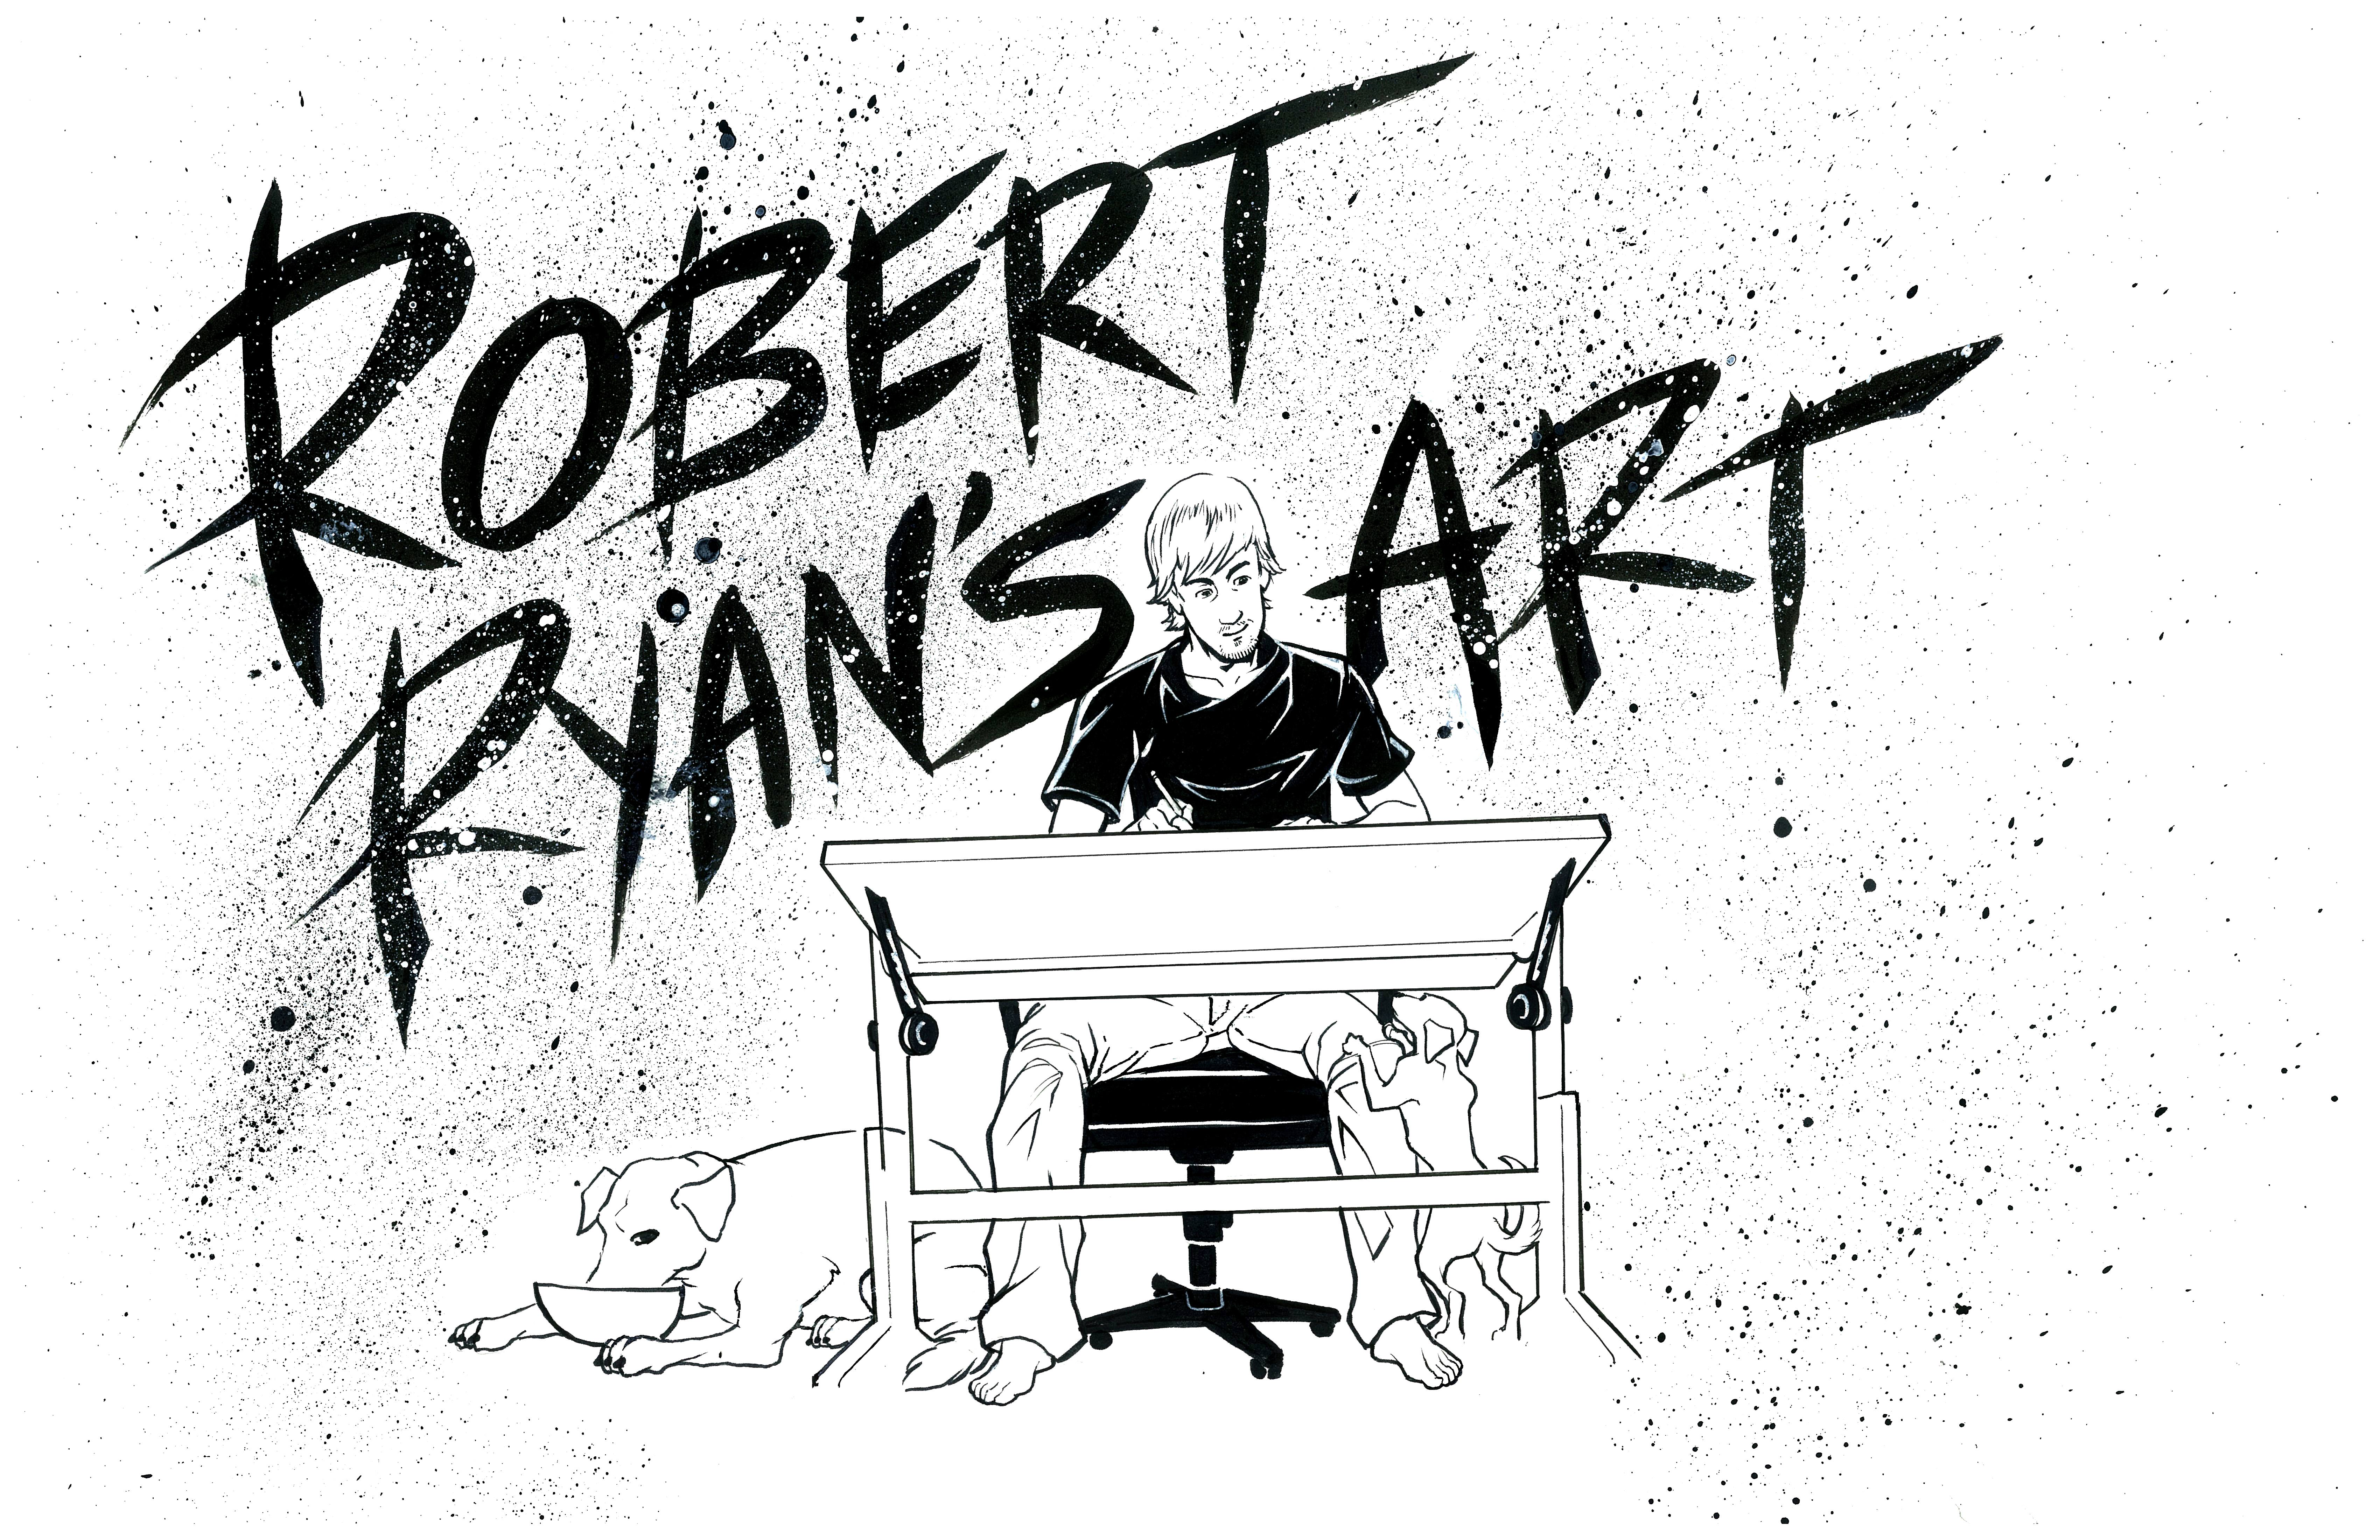 Robert Ryan's Art